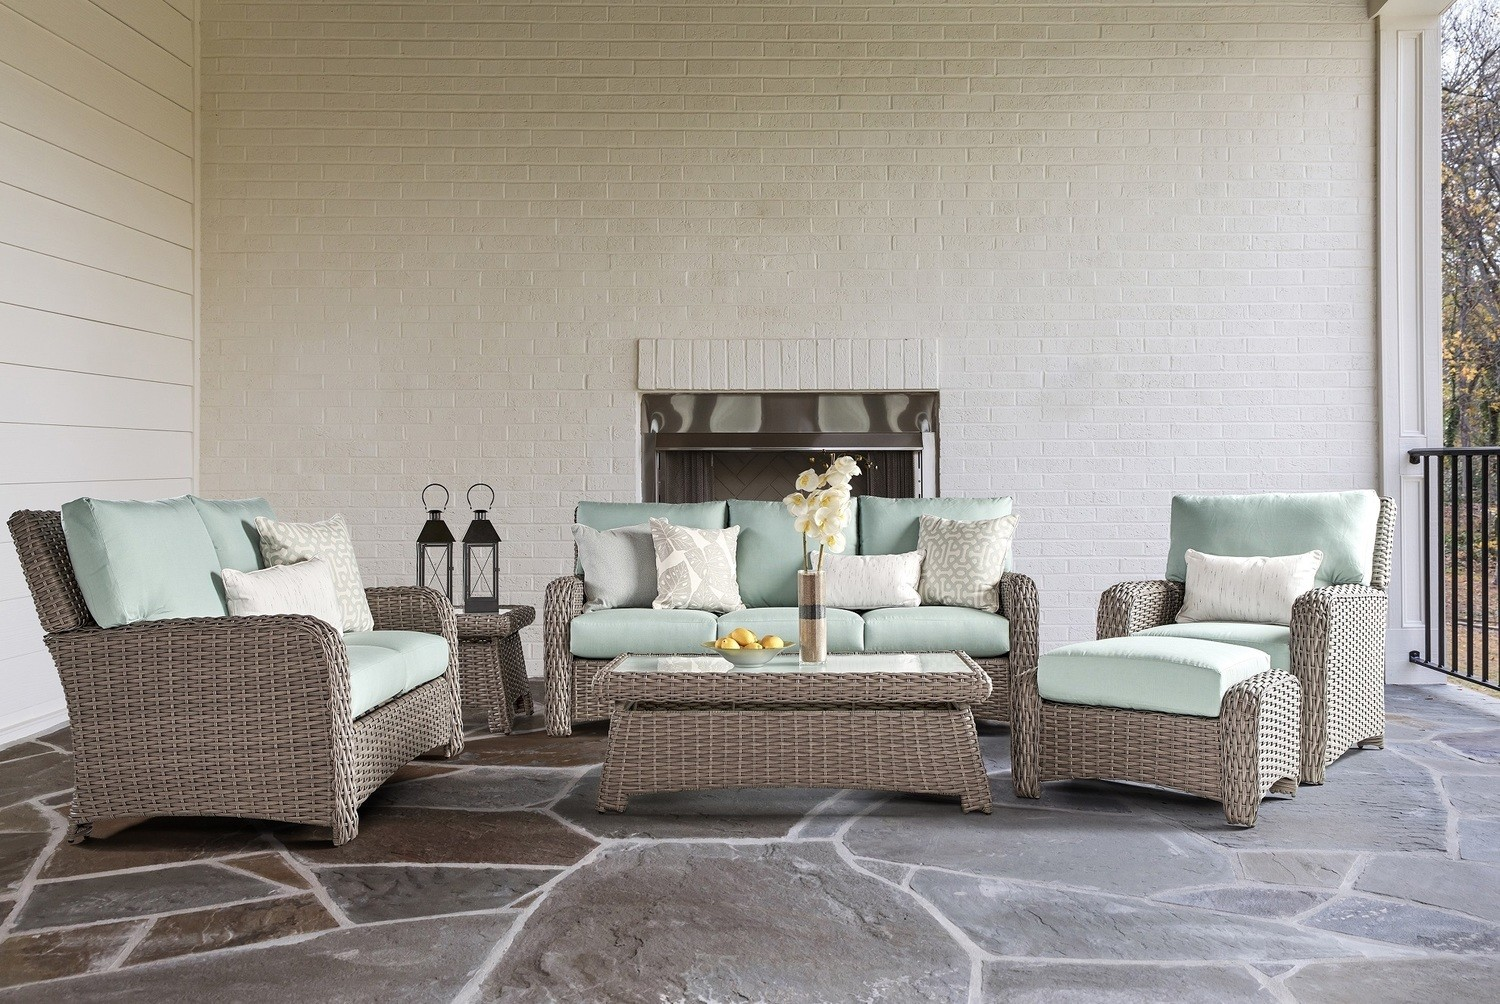 St. Tropez OUTDOOR SEATING COLLECTION Stone